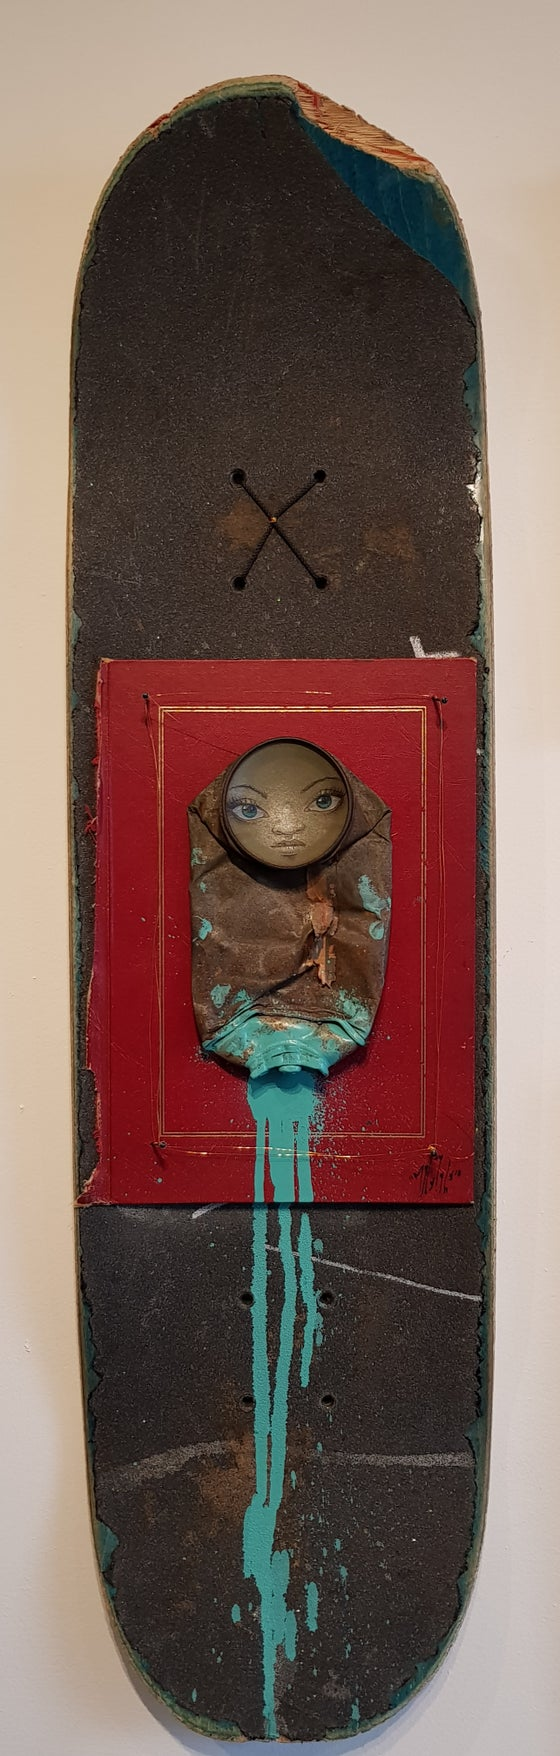 Image of Mydogsighs: All these things